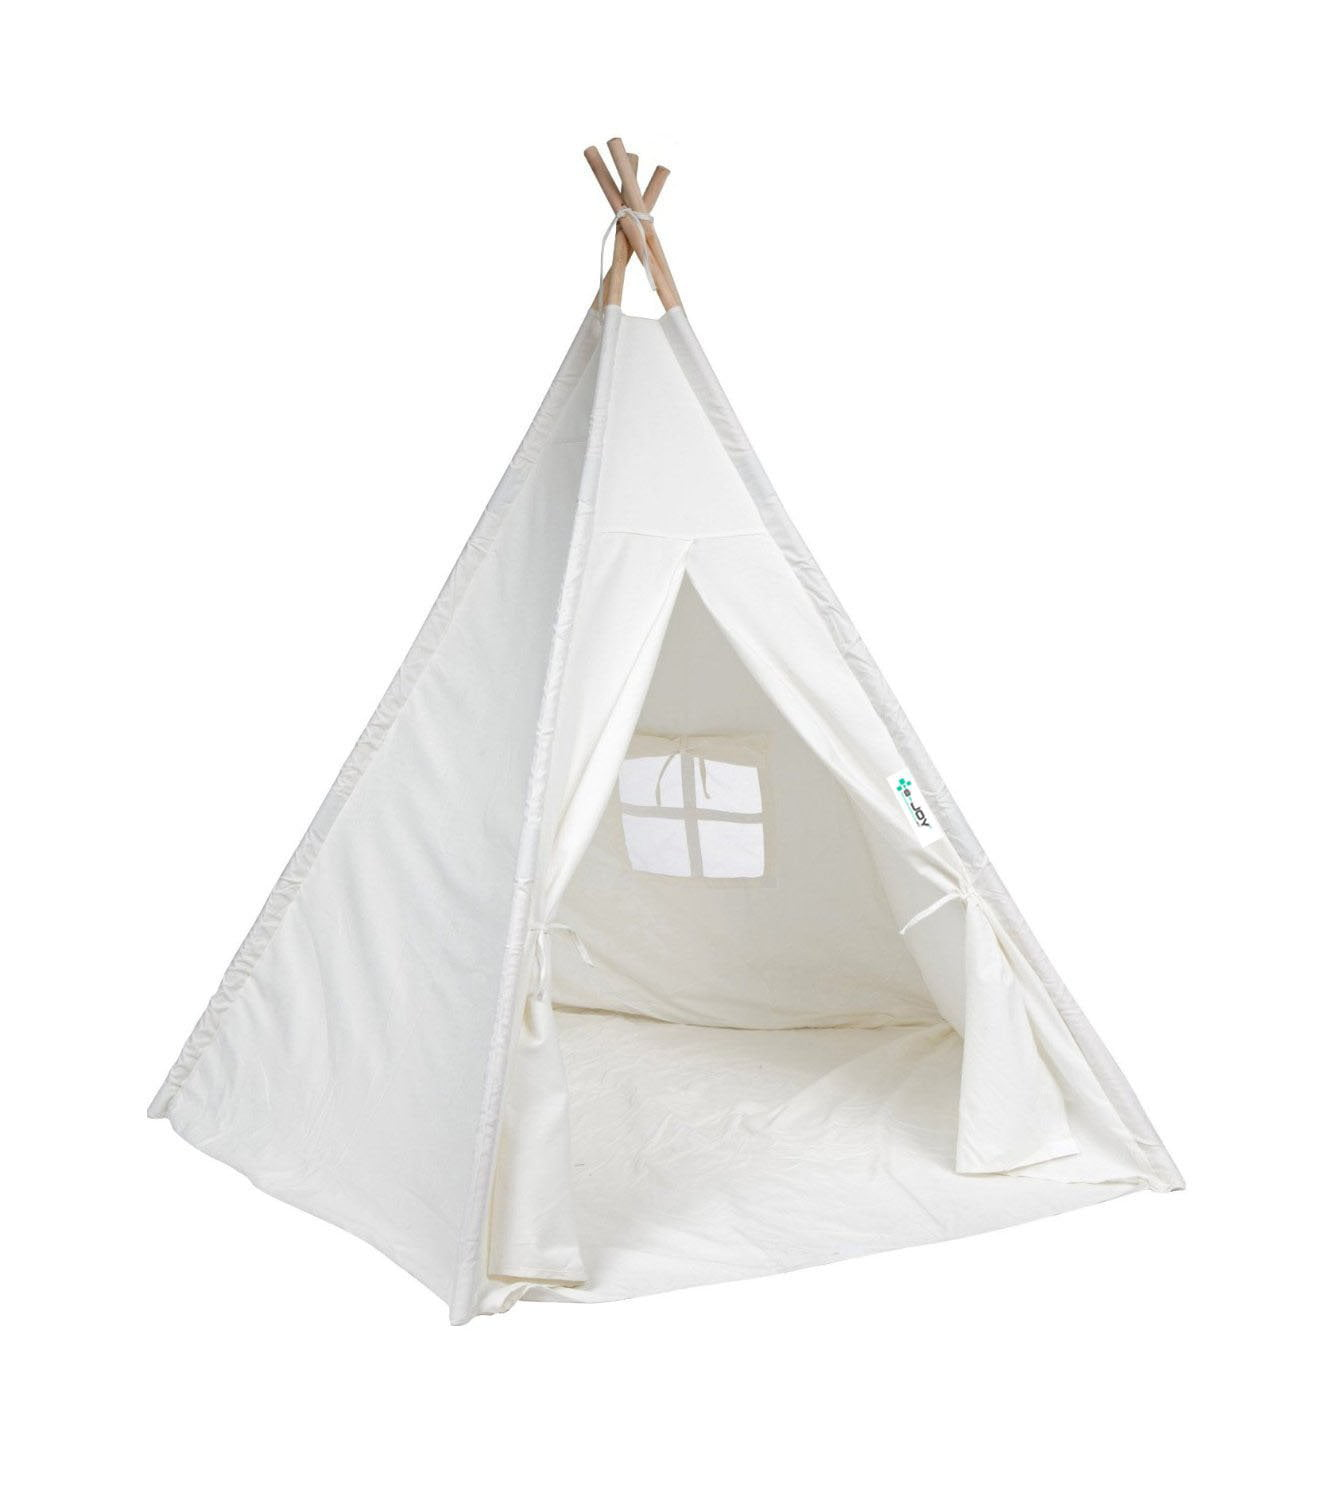 big sale 1a9e5 480f8 e-Joy Indoor Indian Playhouse Toy Teepee Play Tent for Kids Toddlers Canvas  Teepee With Carry Case (Off-White)